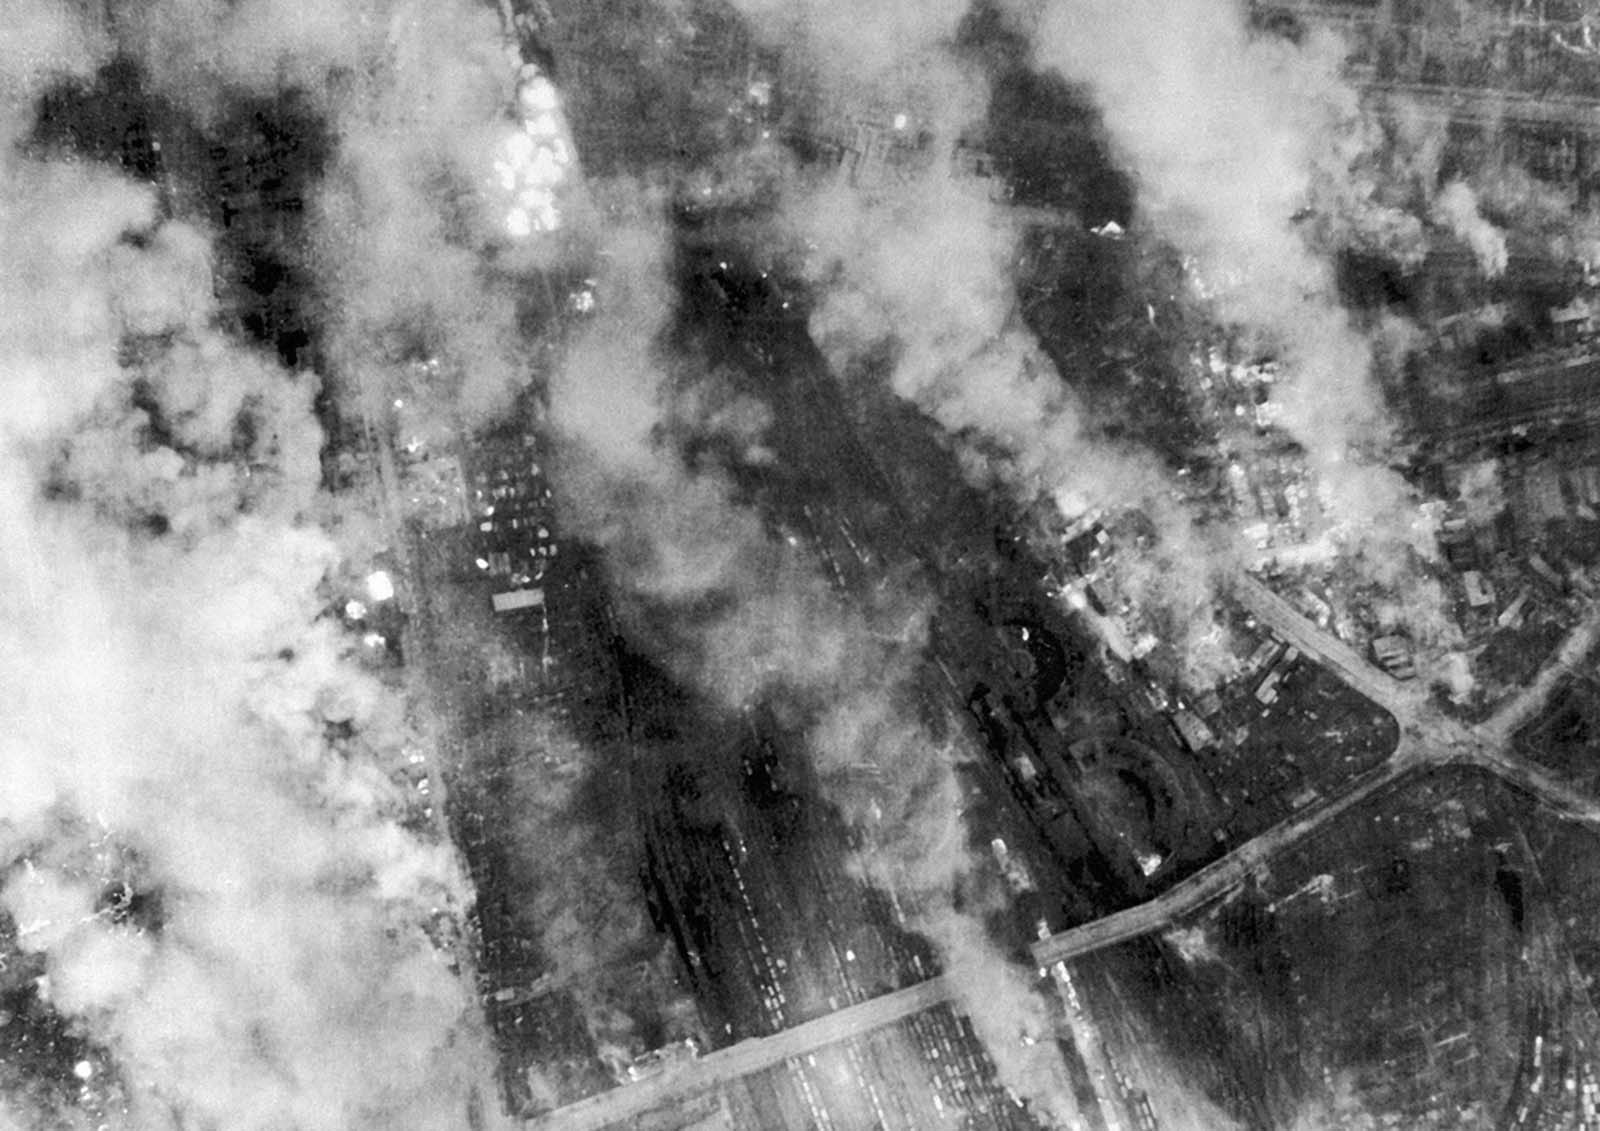 In this British Official Photo, on the night of February 13 and the morning of February 14, 1945, Lancasters of R.A.F. Bomber Command made two very heavy attacks on Dresden, Germany. Heavy bombers of the U.S. 8th Air Force attacked this target the following day. The smoke from fires still burning drifted across Dresden on February 14, 1945.